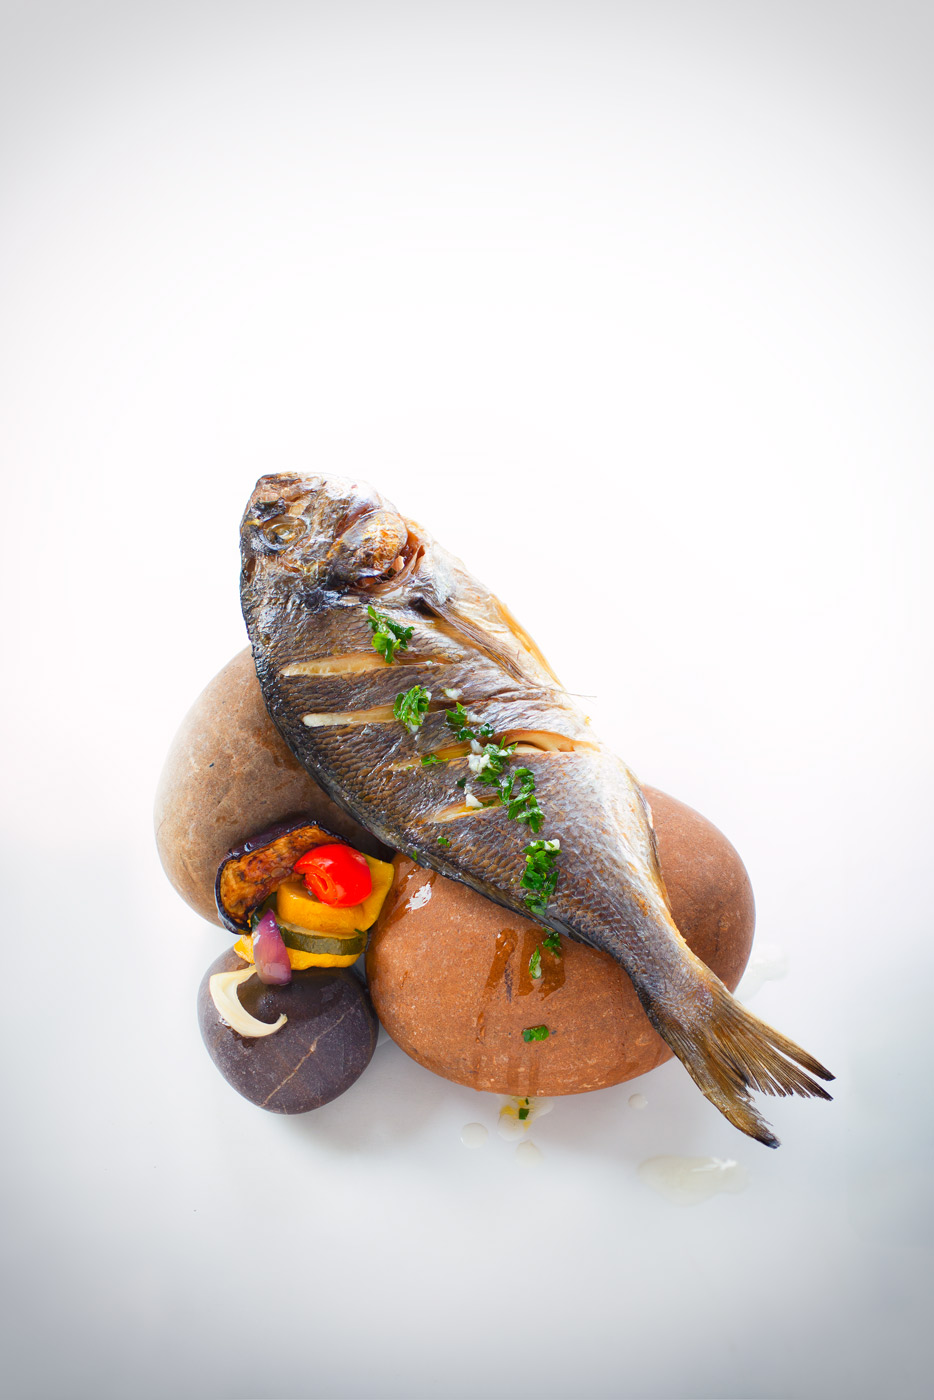 Recipe image depicting a grilled fish with vegetables displayed on stones